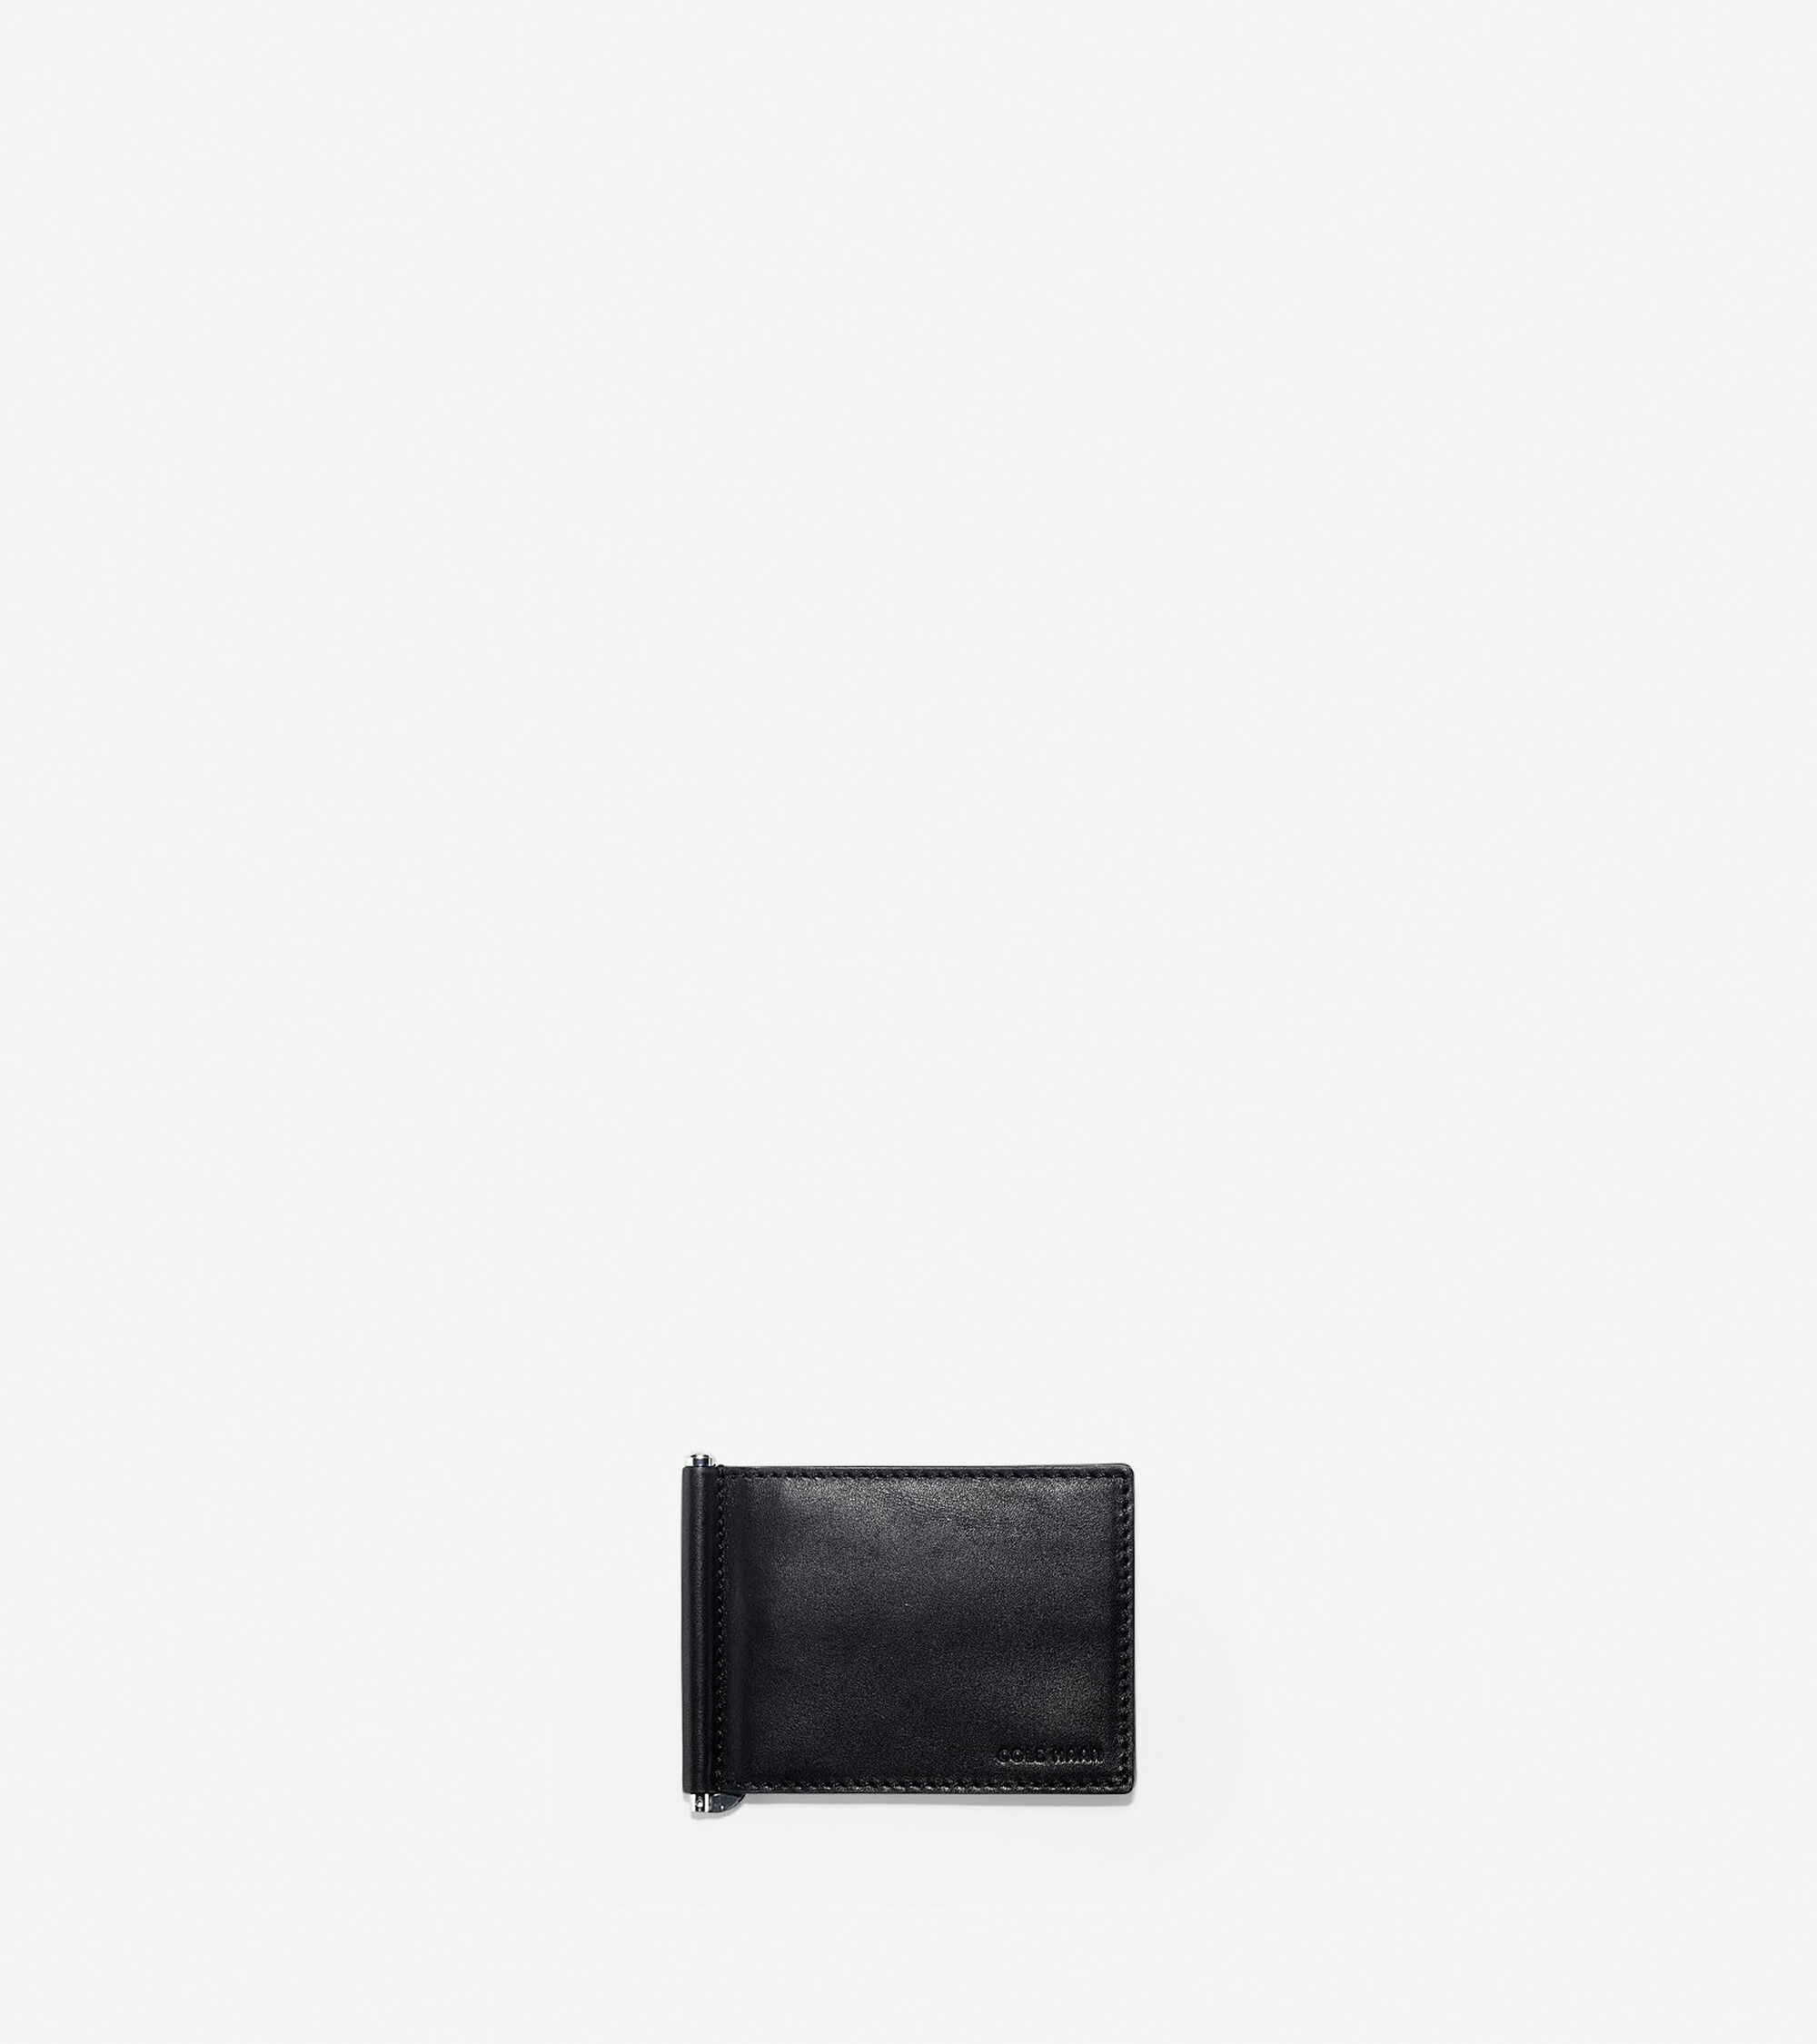 Men\'s Wallets & Card Cases : Bags & Wallets | Cole Haan